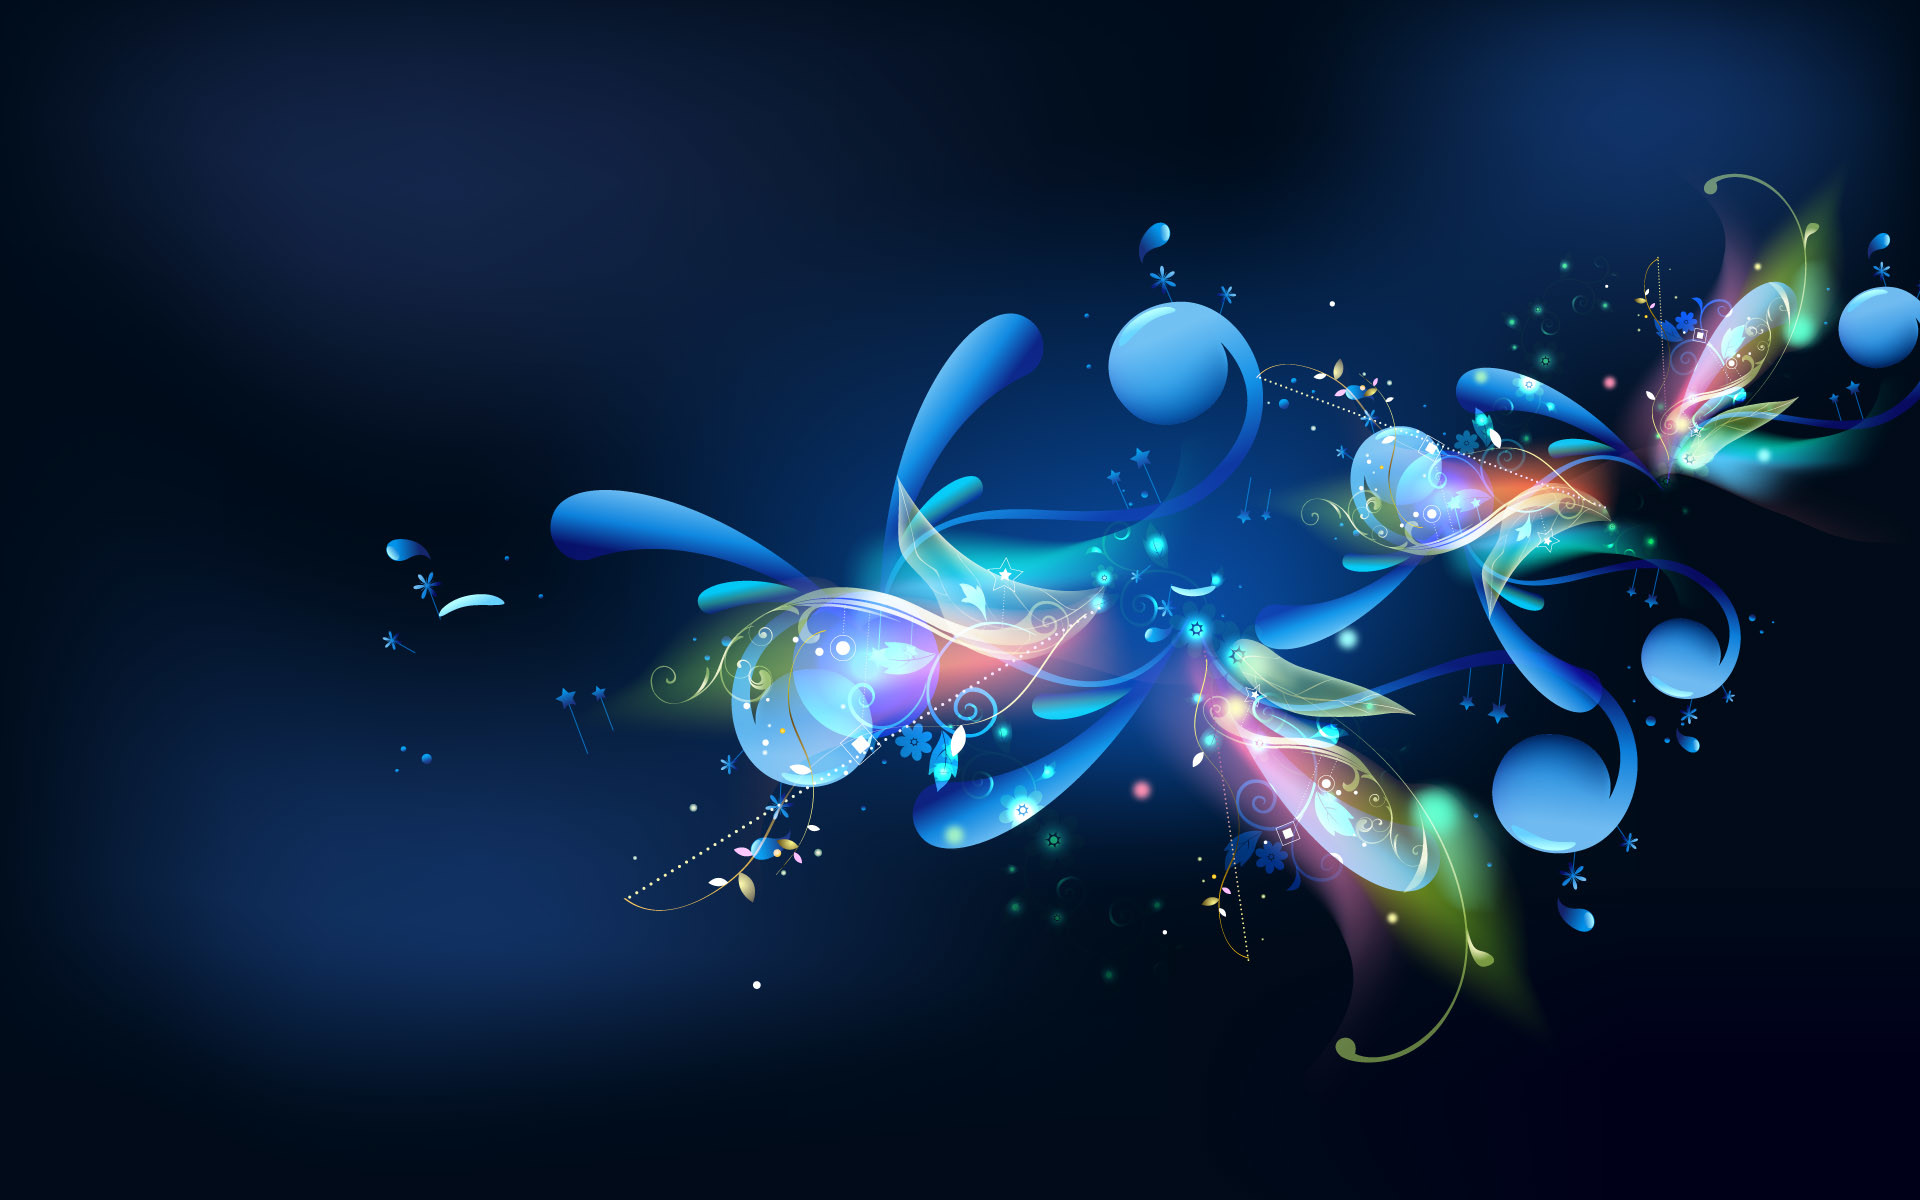 Abstract Backgrounds 5D8 Wallpaper